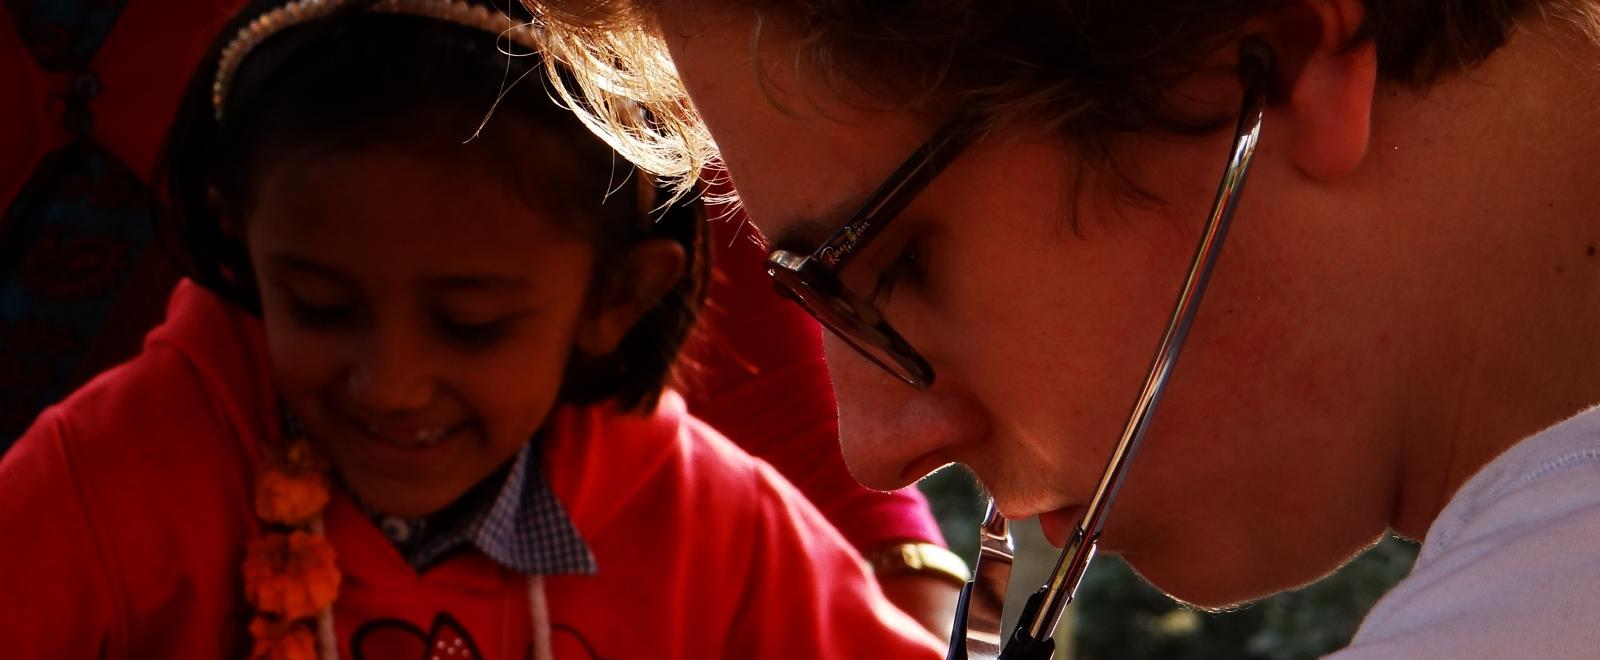 A female intern from Projects Abroad is pictured treating a child using a stethoscope on her nursing intership in Nepal.